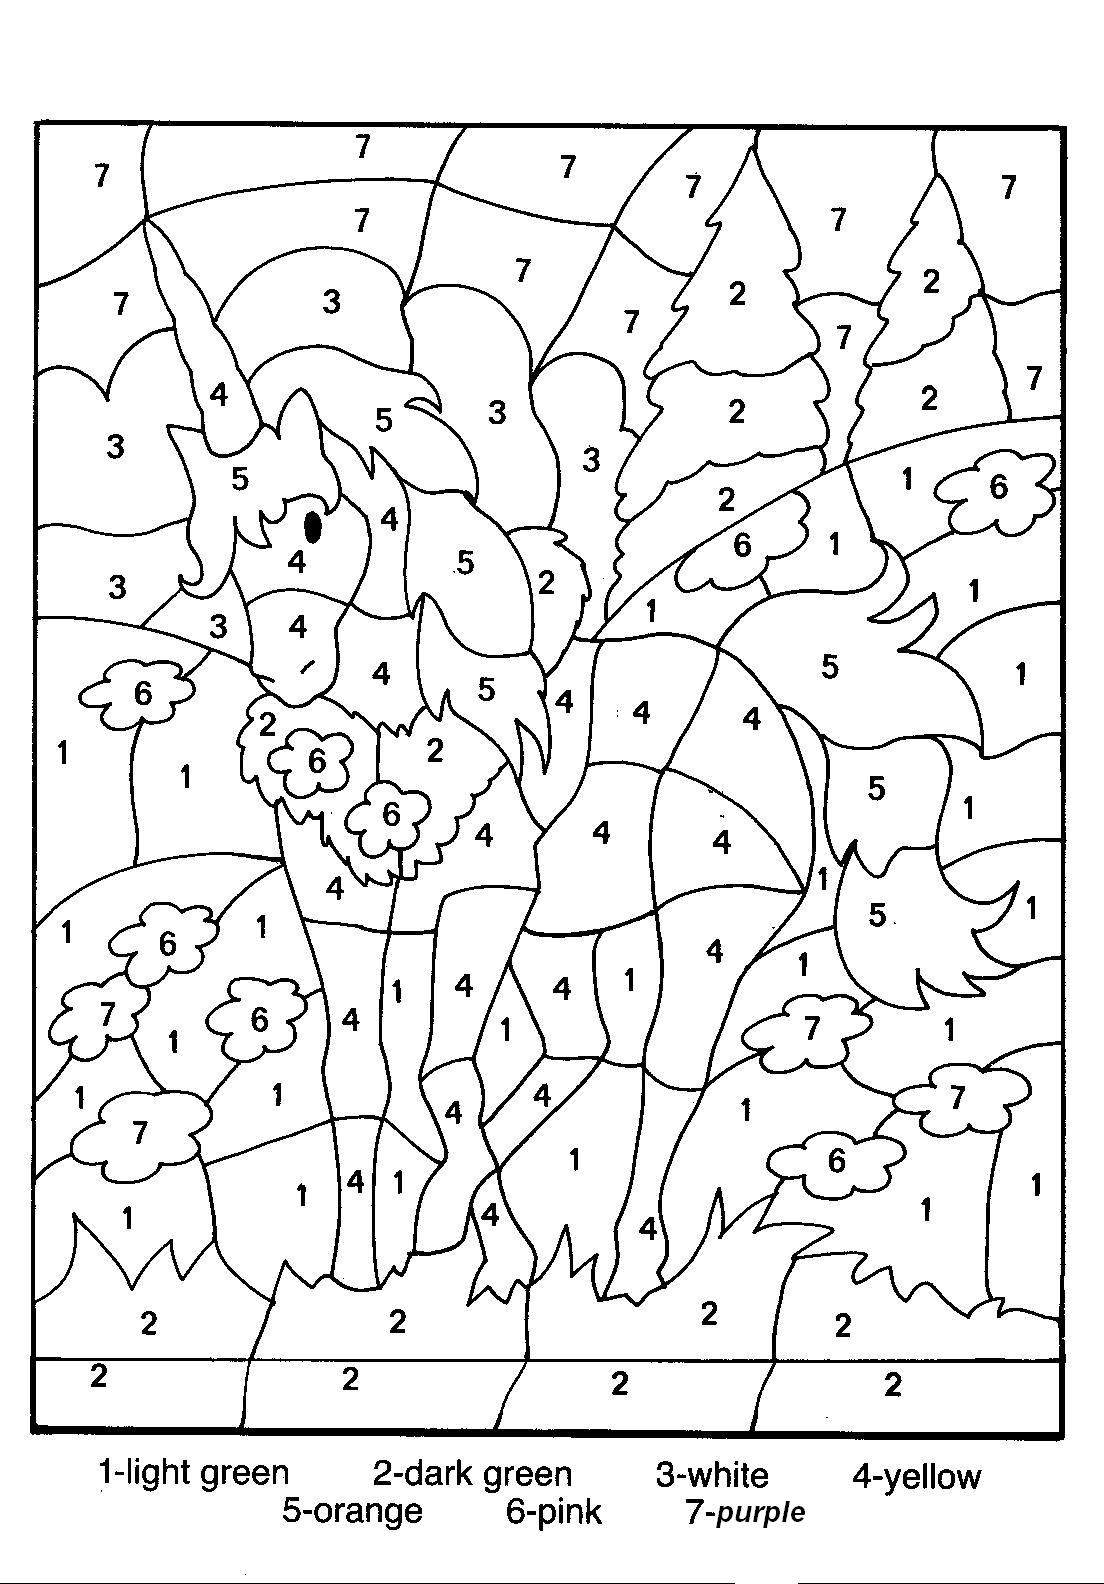 Free Printable Color by Number Coloring Pages Best Coloring – Color by Number Worksheets for Kindergarten Free